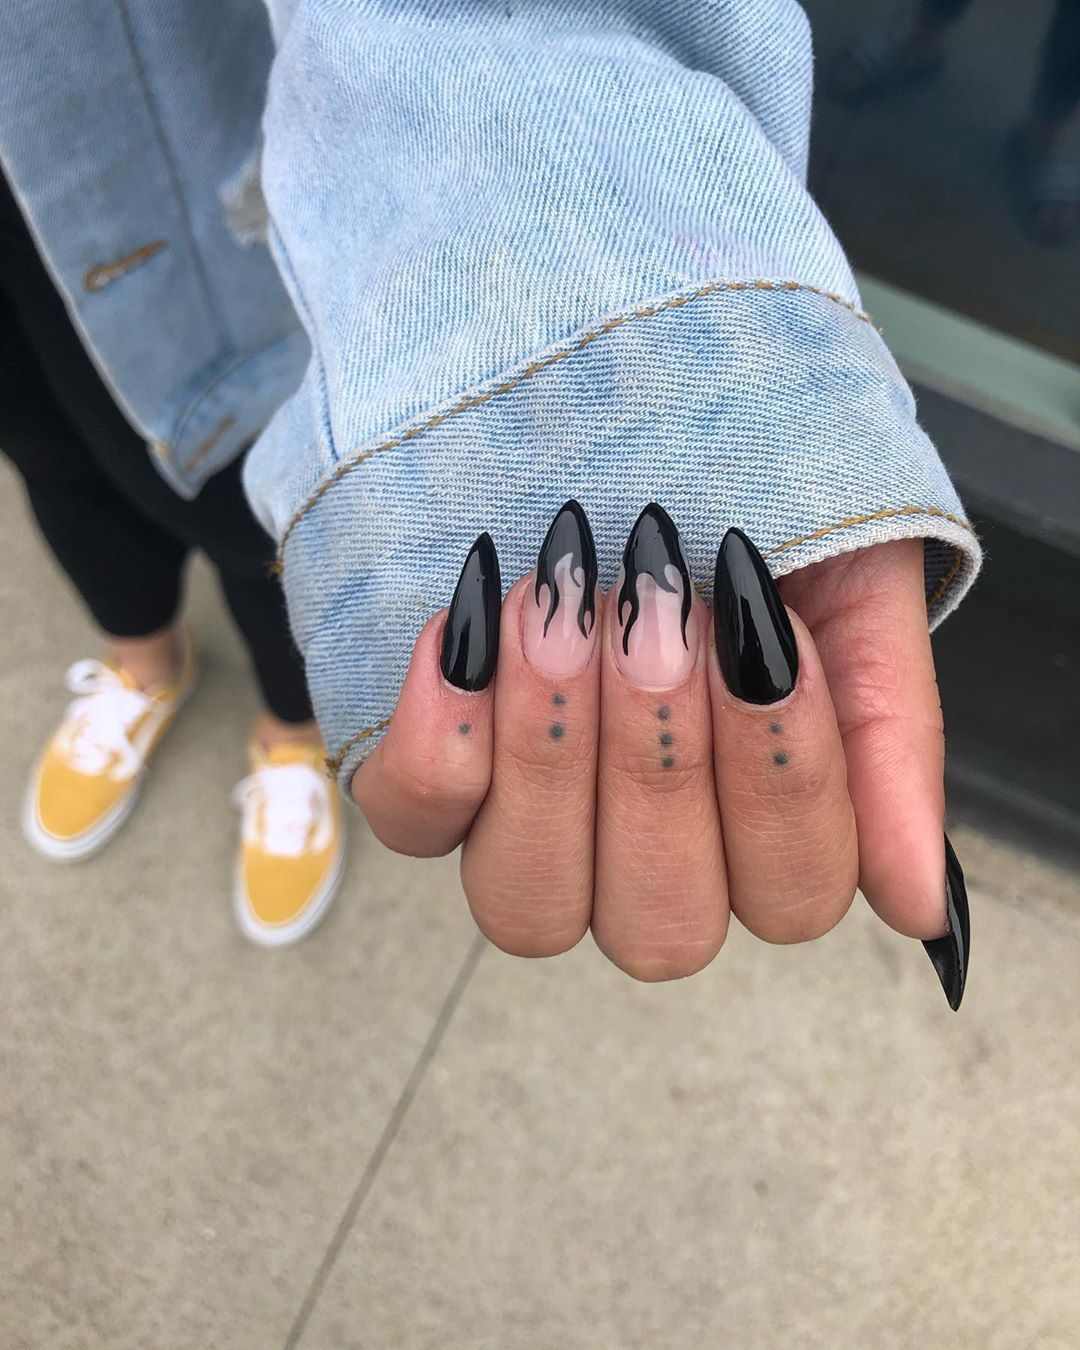 Black Flame Nails Black Stiletto Nails Pretty Acrylic Nails Fire Nails